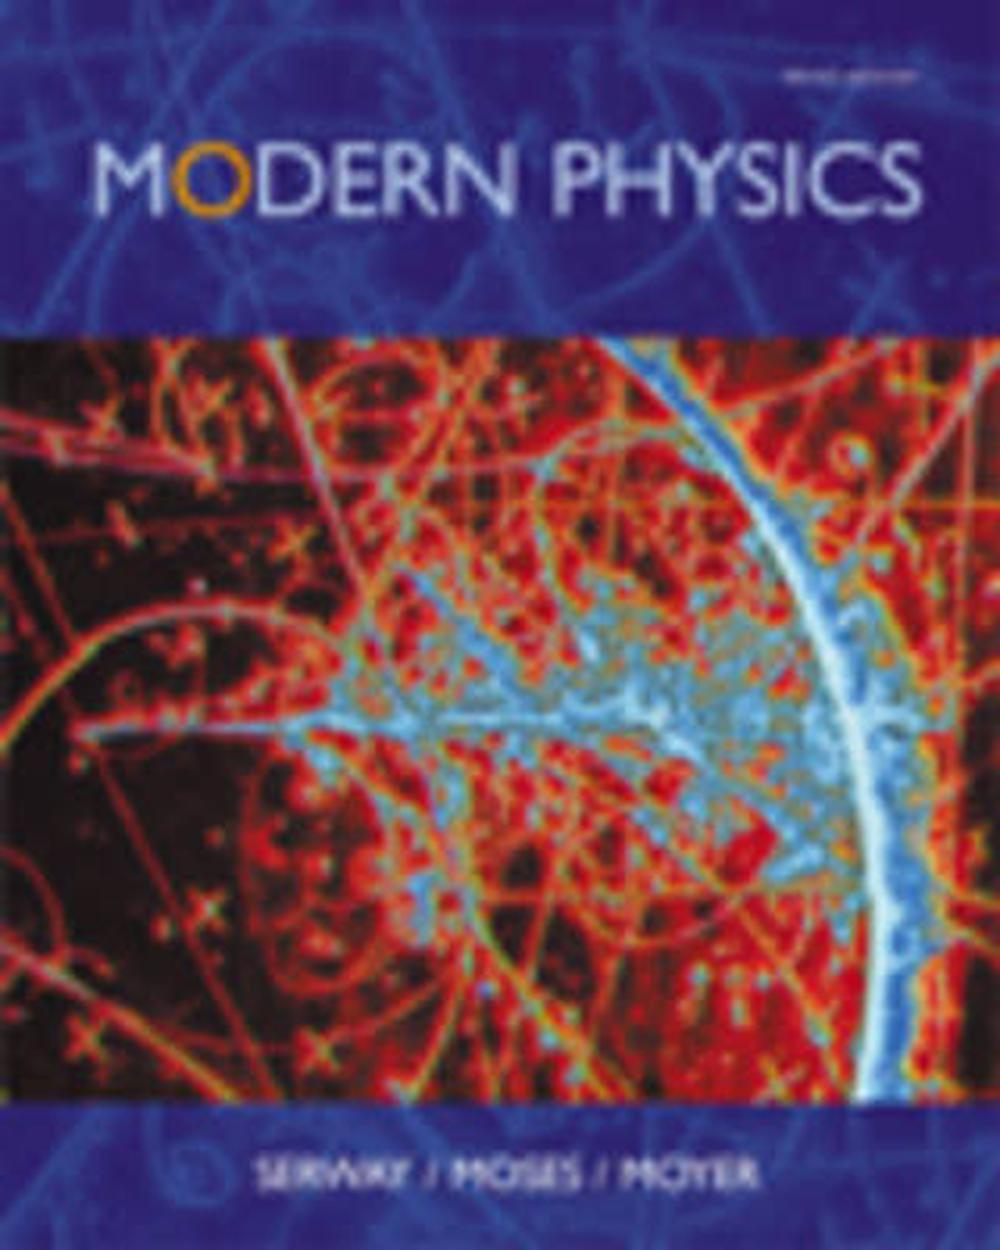 Serway modern physics solutions manual today manual guide trends modern physics 3rd edition by raymond a serway hardcover rh thenile co nz serway physics circular motion serway modern physics solution manual fandeluxe Choice Image